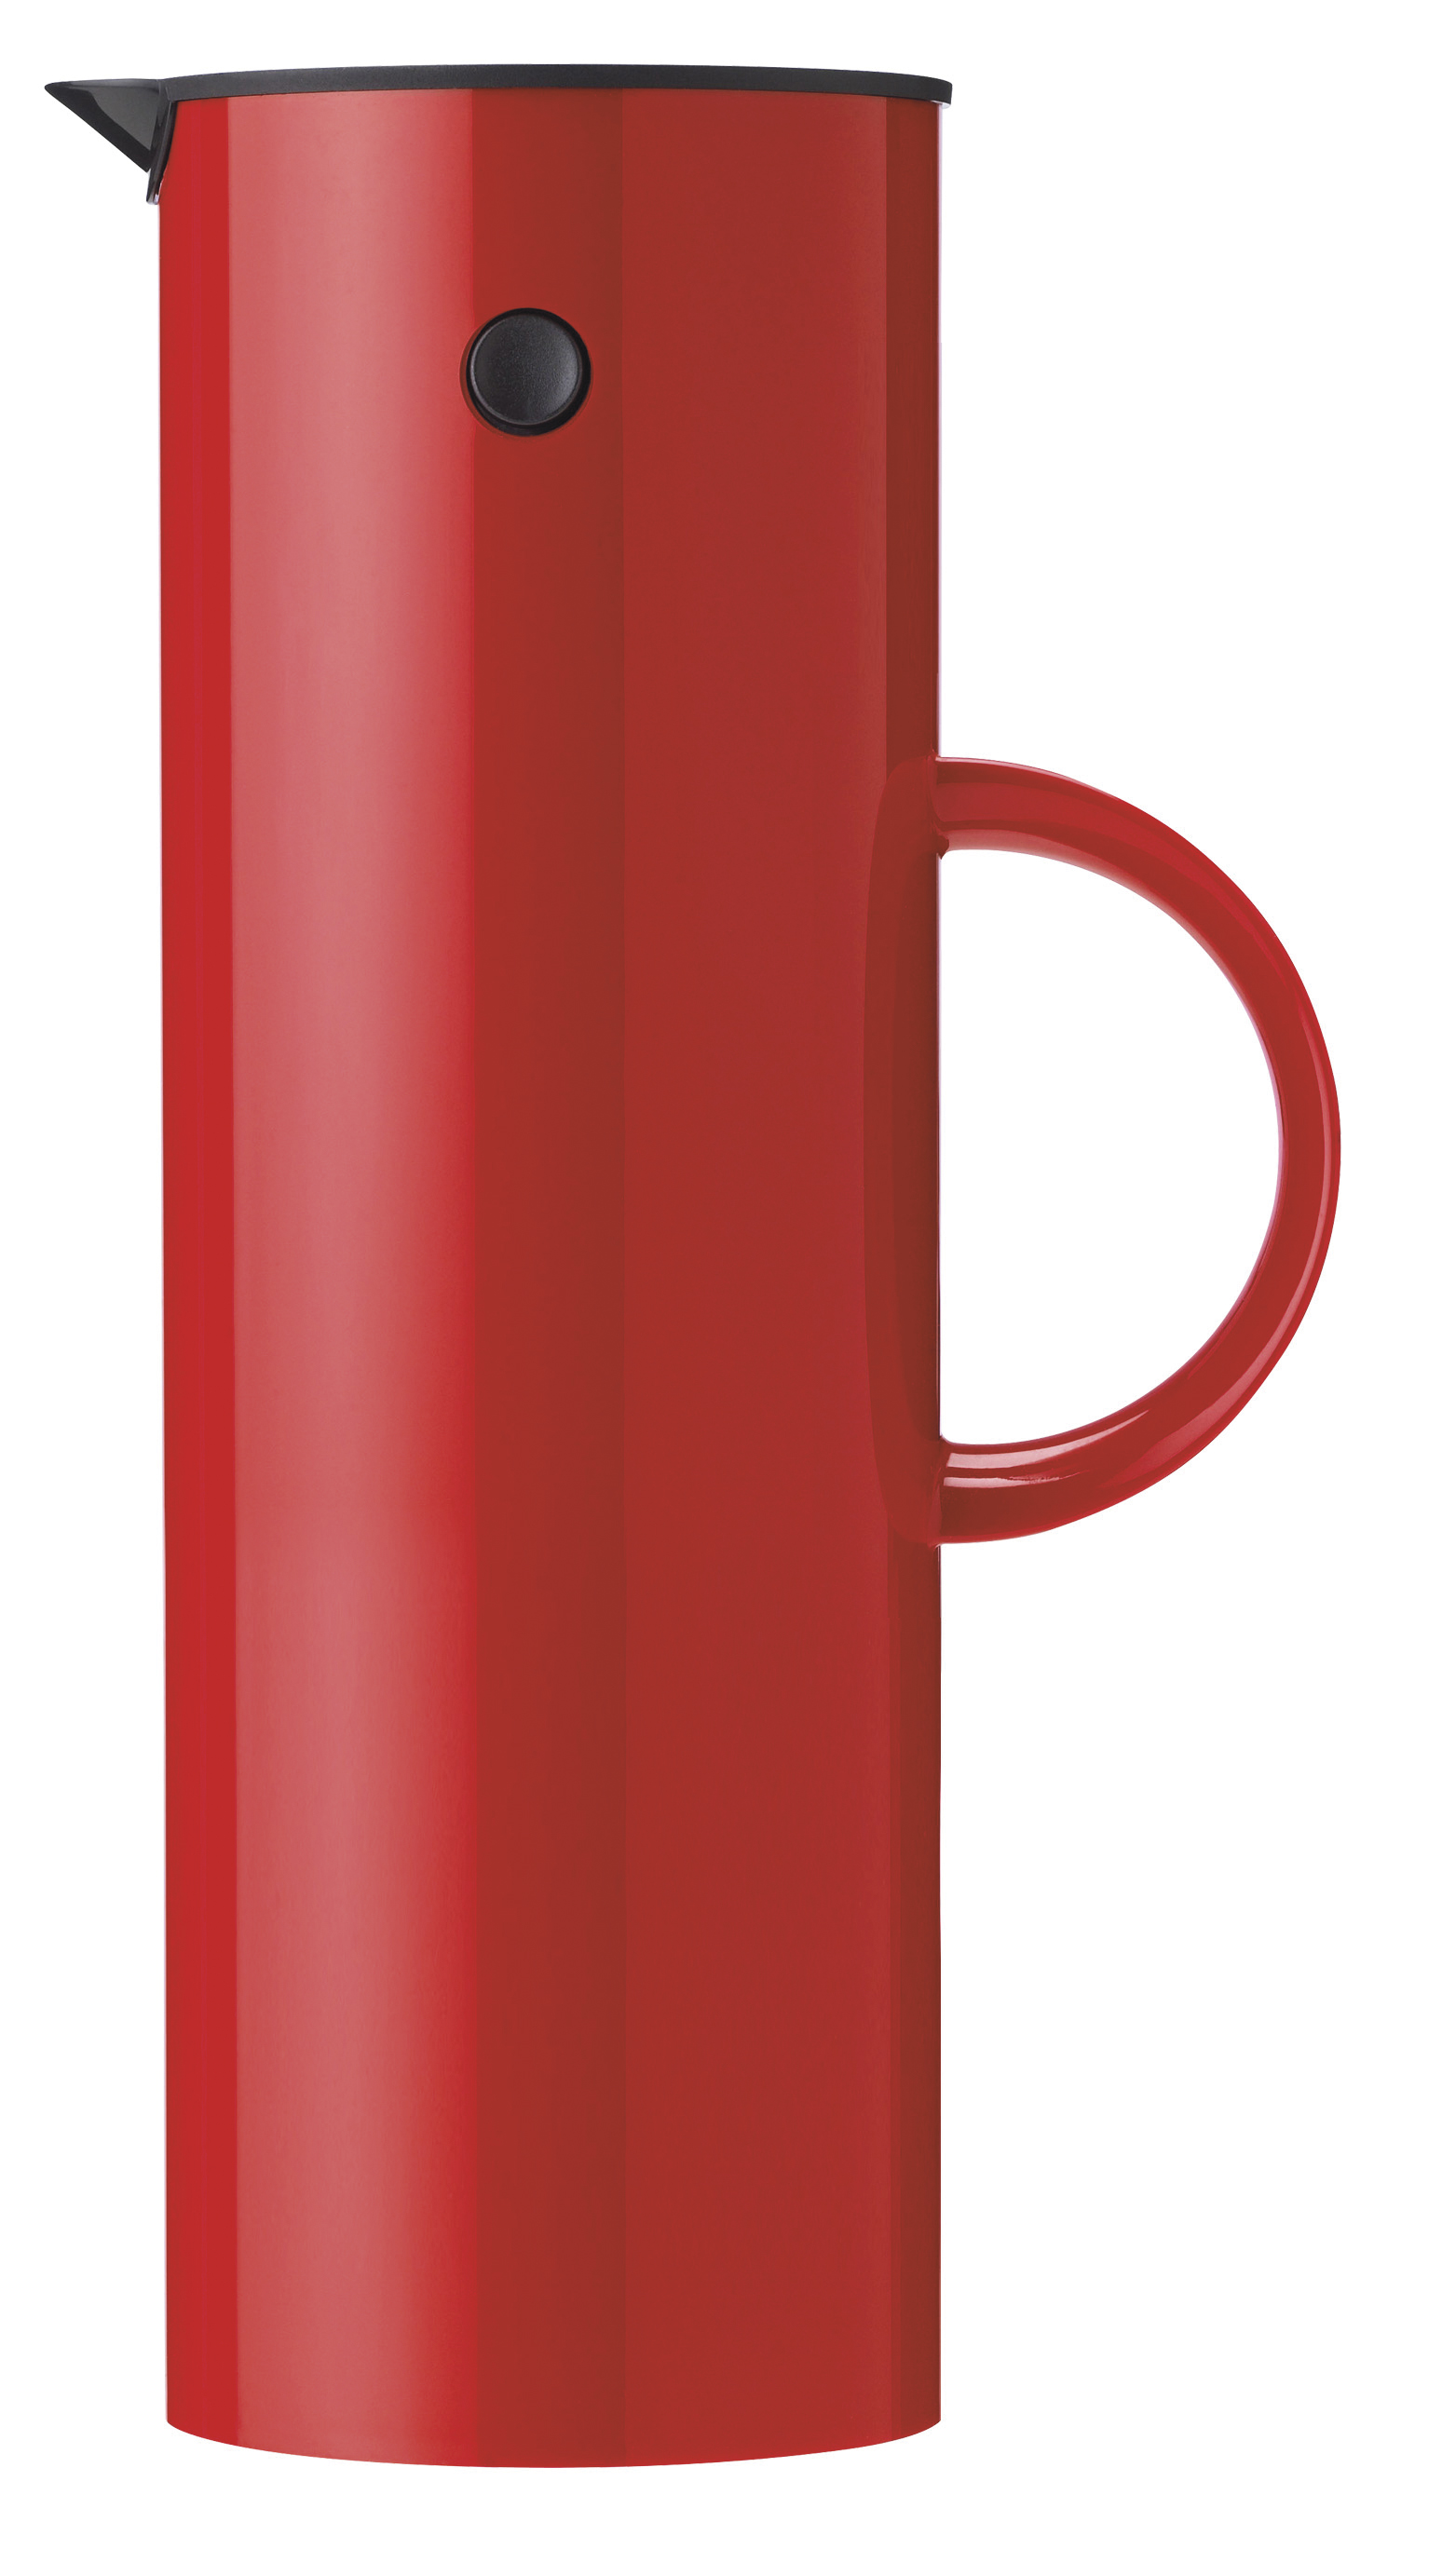 stelton em77 isolierkanne 1l red isolierkannen kaffee. Black Bedroom Furniture Sets. Home Design Ideas